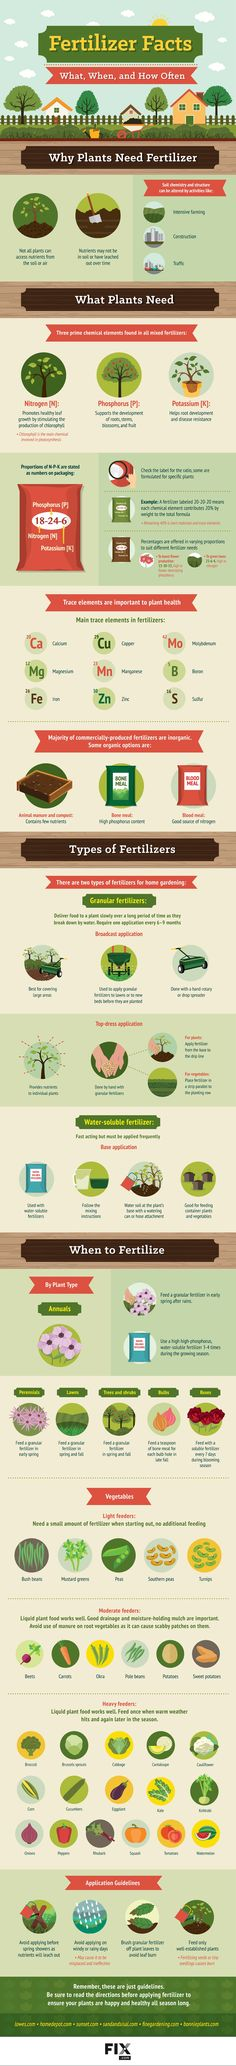 Using soils can make